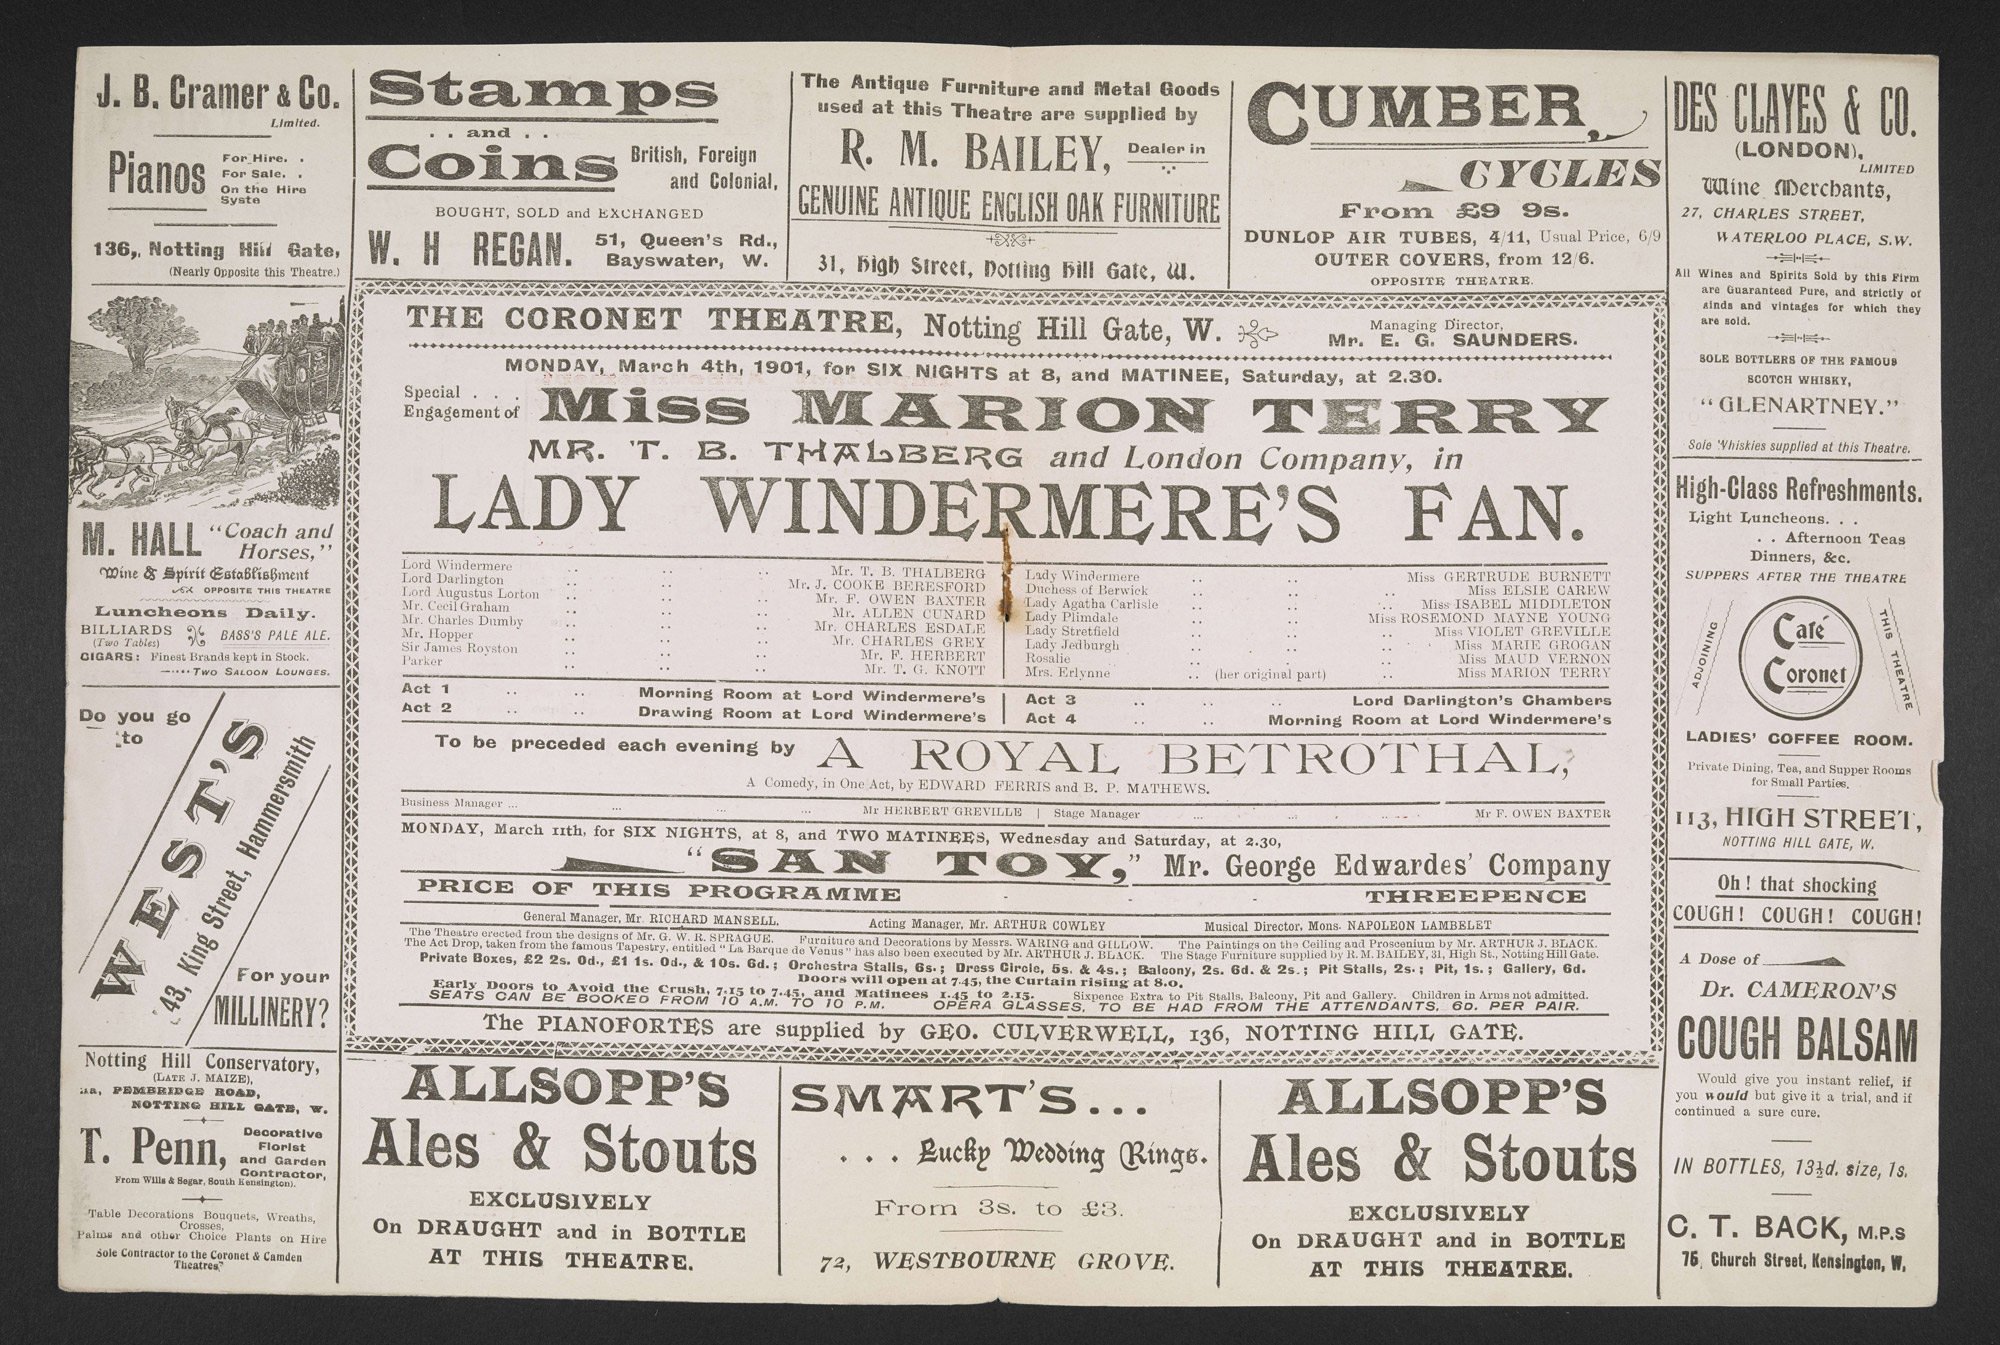 Programme for Lady Windermere's Fan at the Coronet Theatre